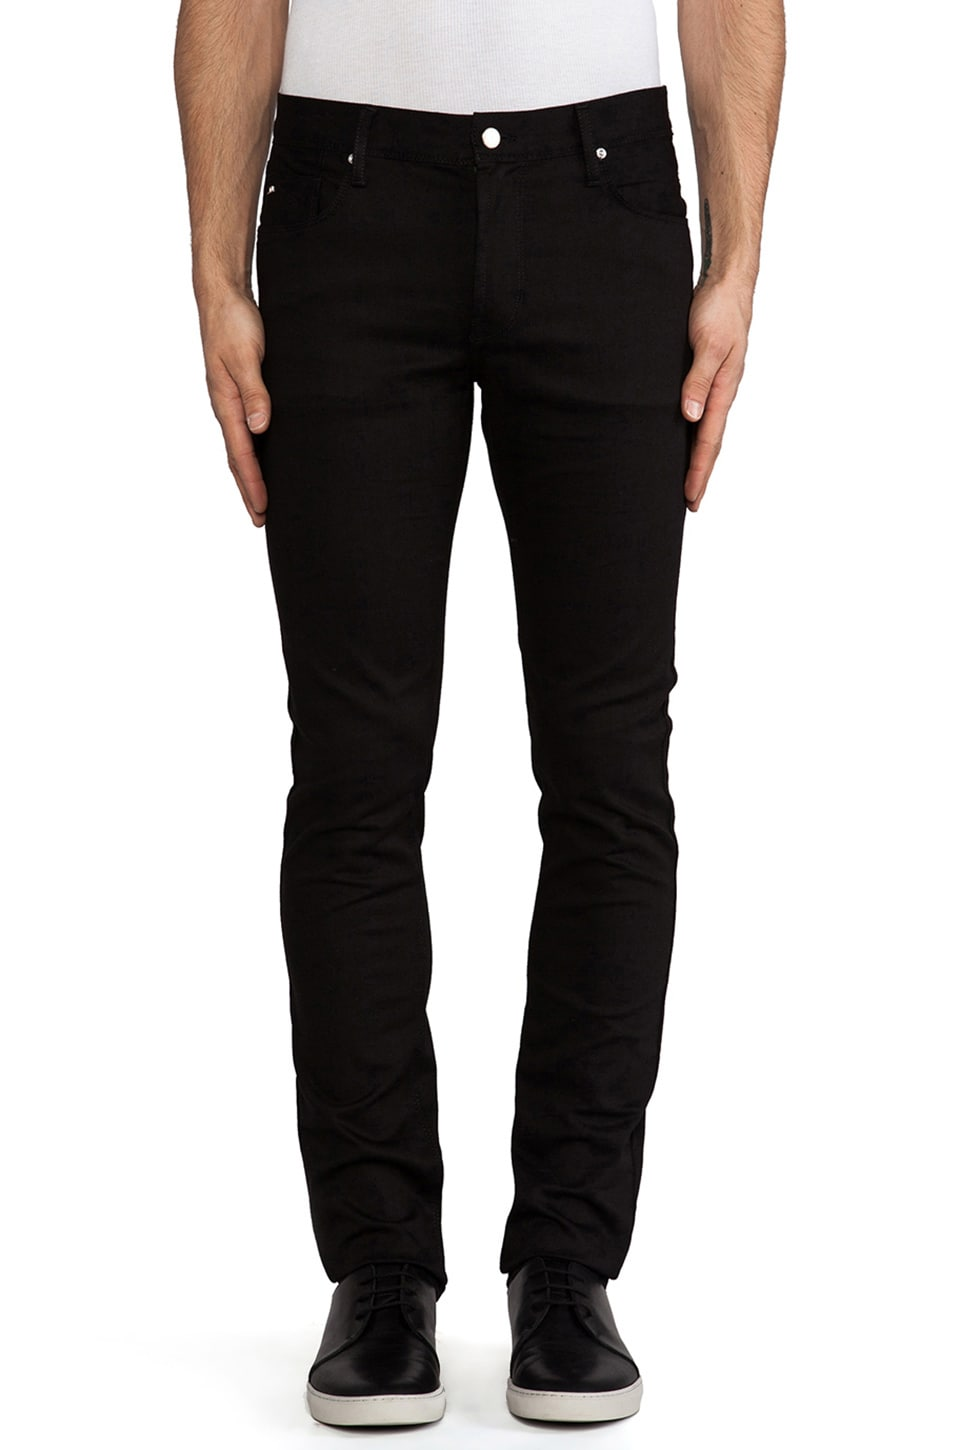 J. Lindeberg Damien Stretch Denim in Black